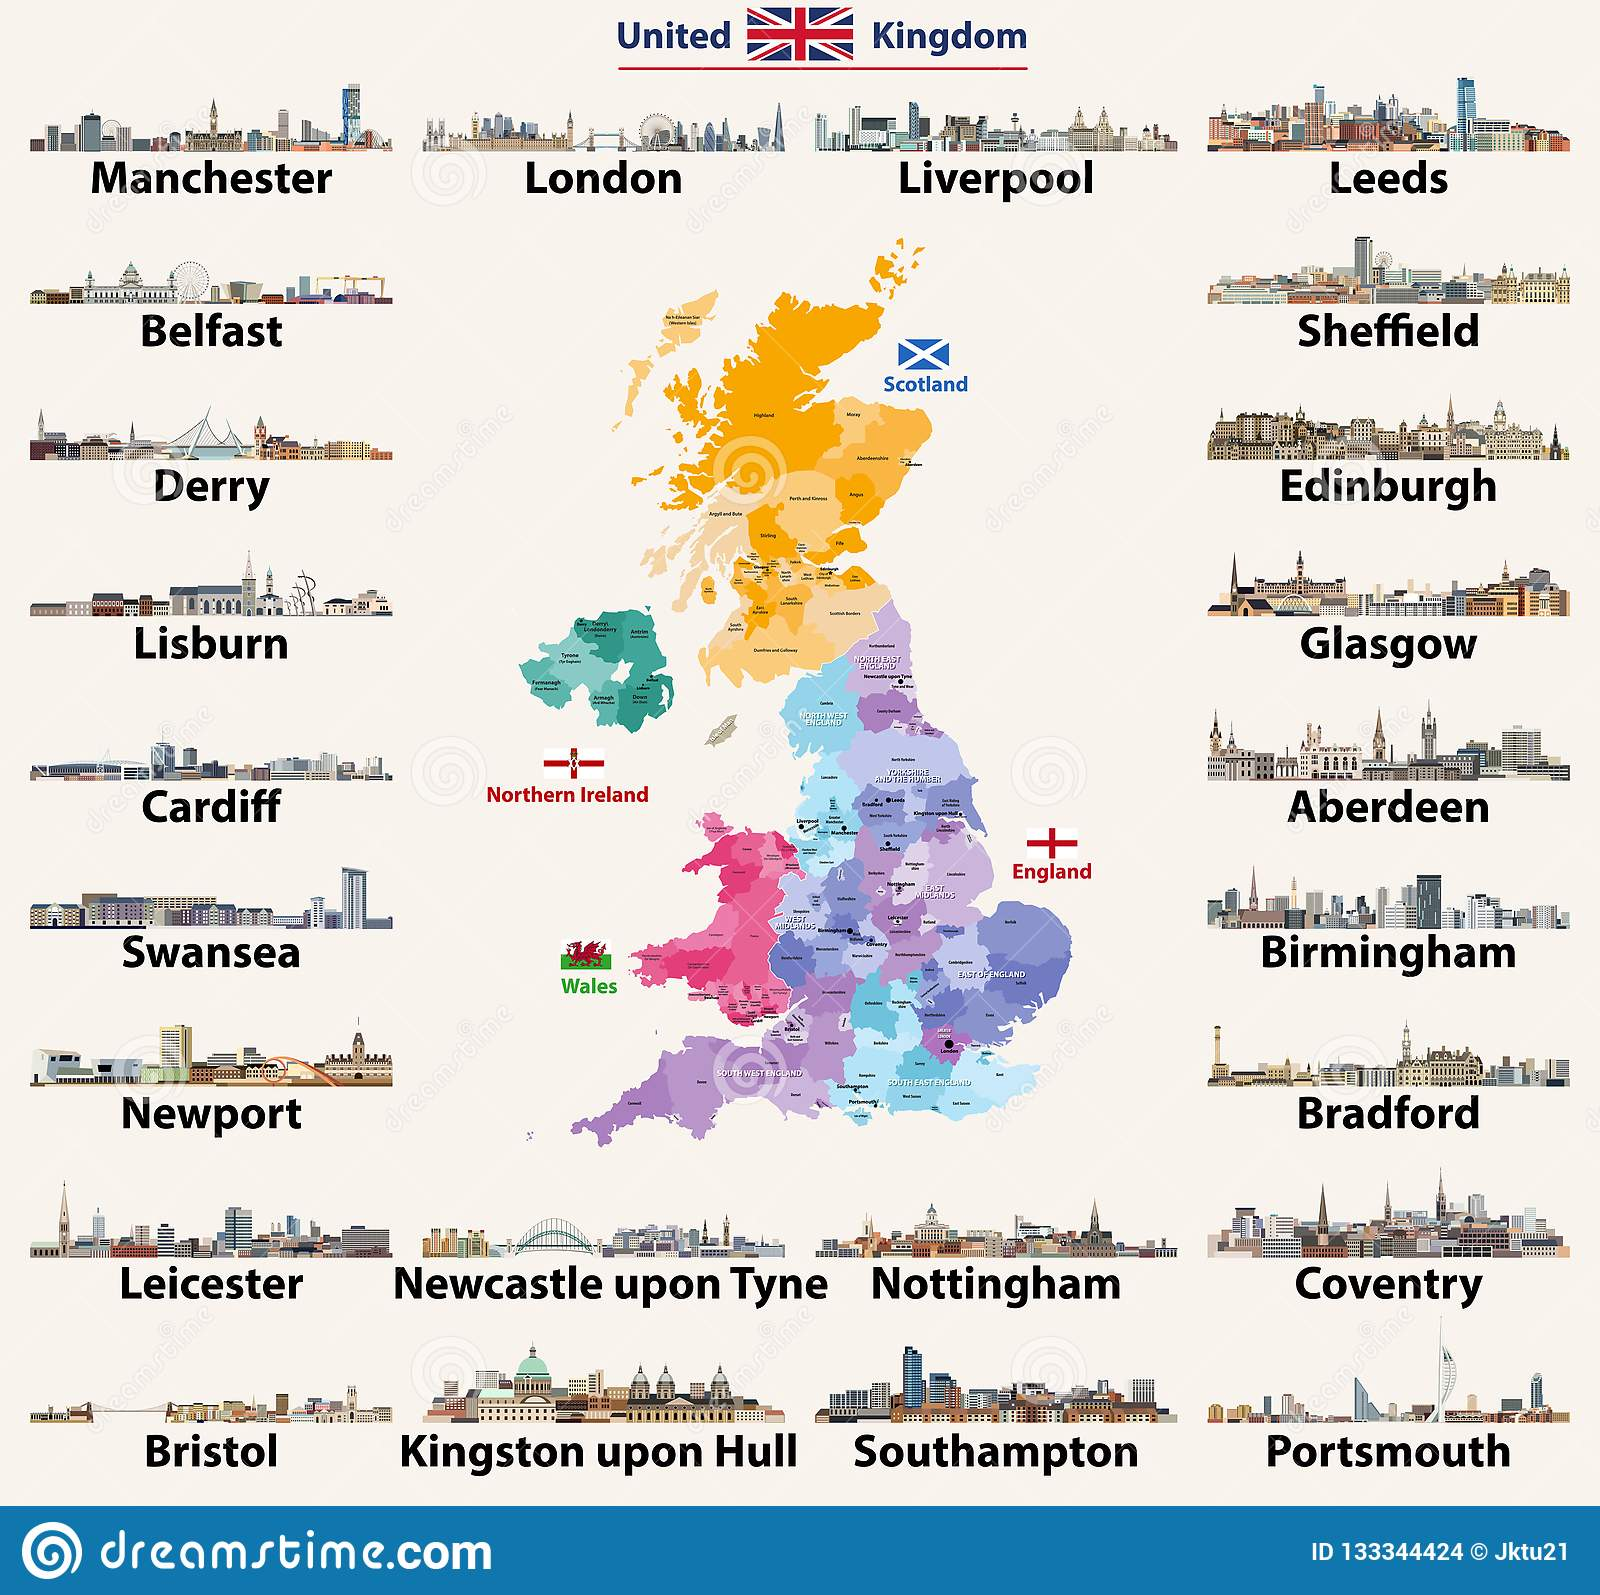 Map Of Uk And Cities.United Kingdom Cities Skylines Detailed Map Of United Kingdom With